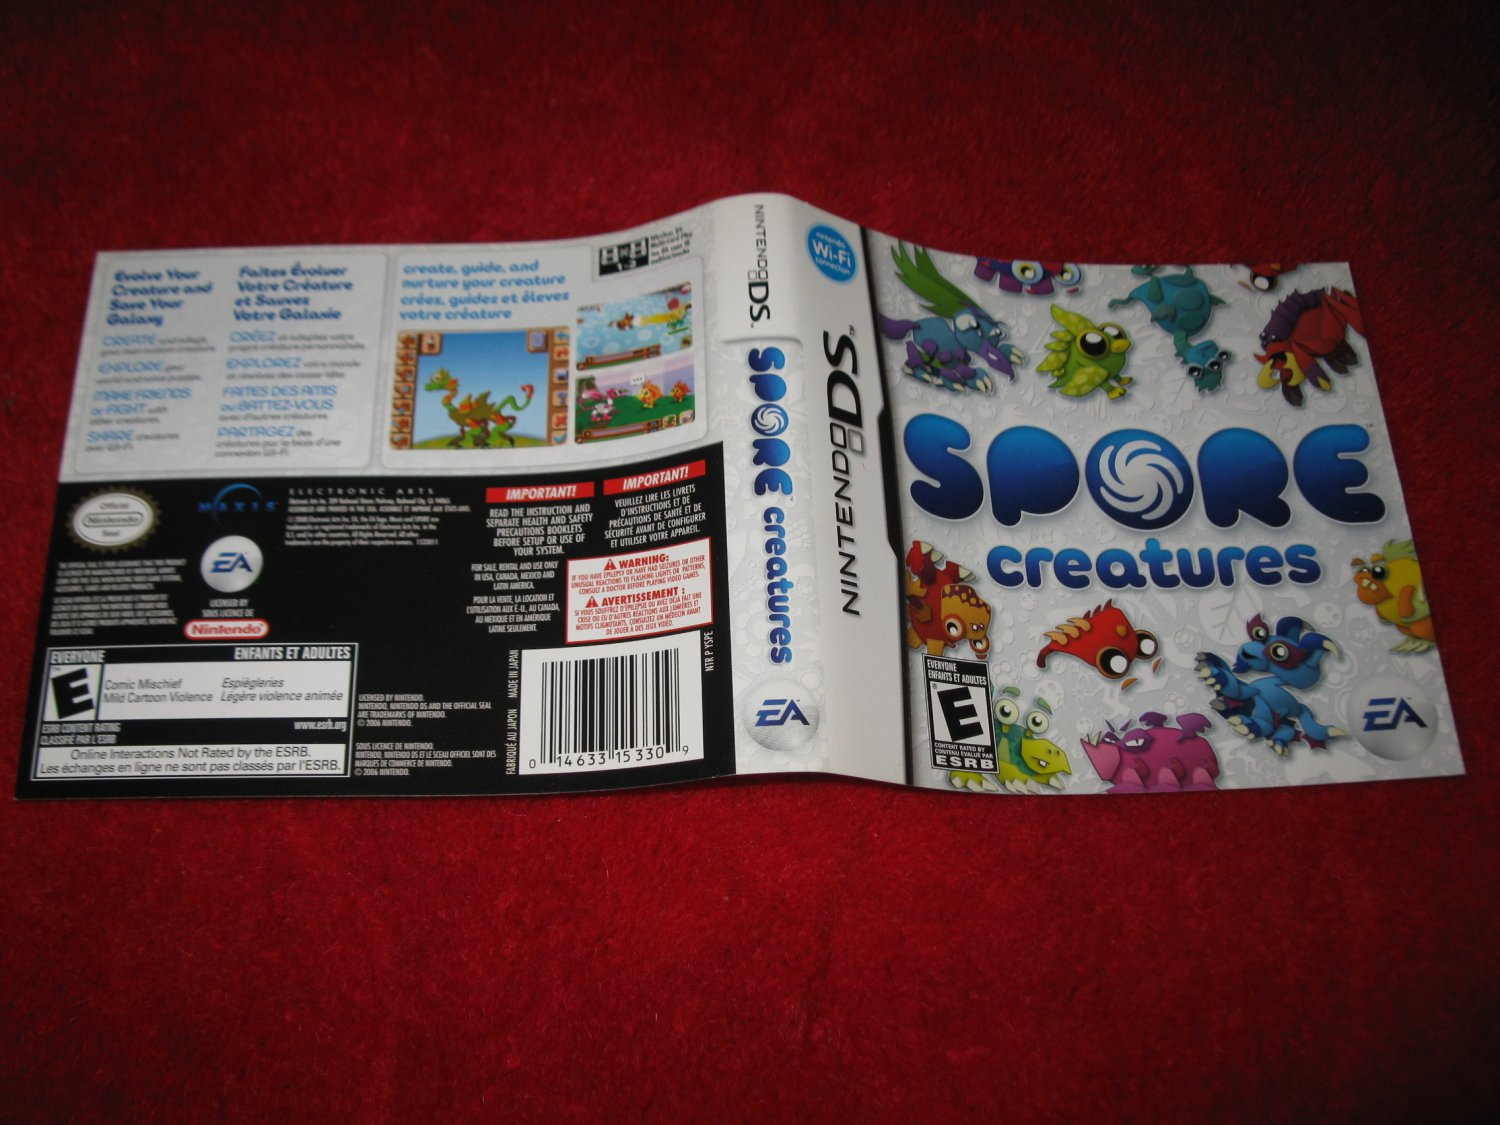 Spore Creatures : Nintendo DS Video Game Case Cover Art insert